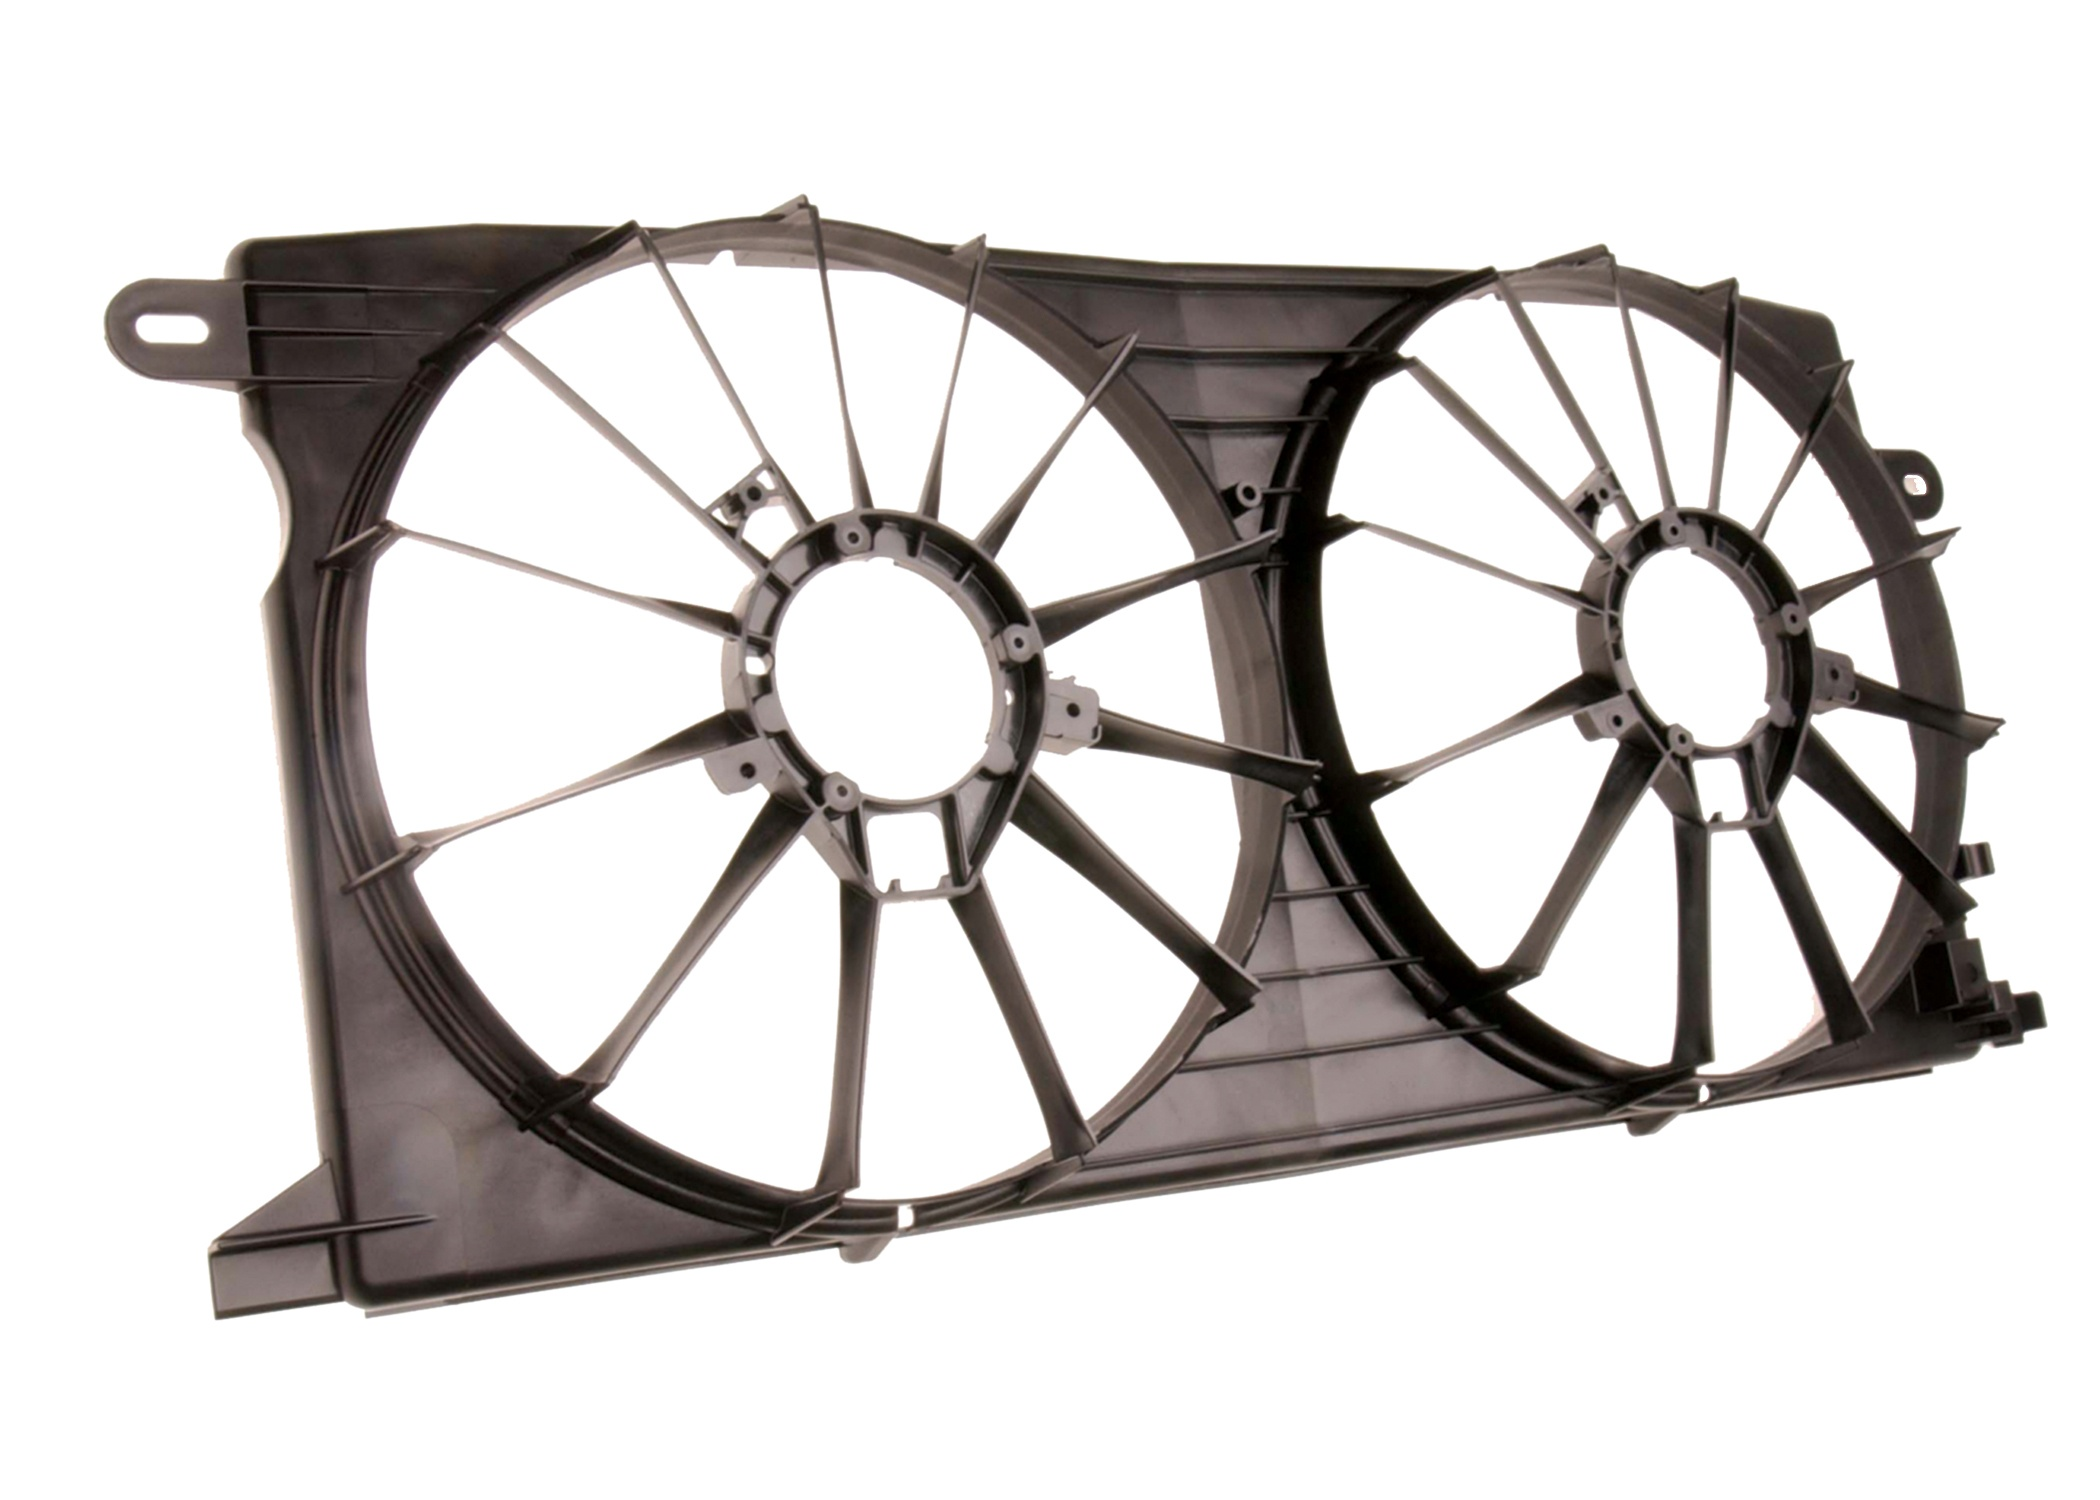 ACDELCO OE SERVICE - Engine Cooling Fan Shroud - DCB 15-8974